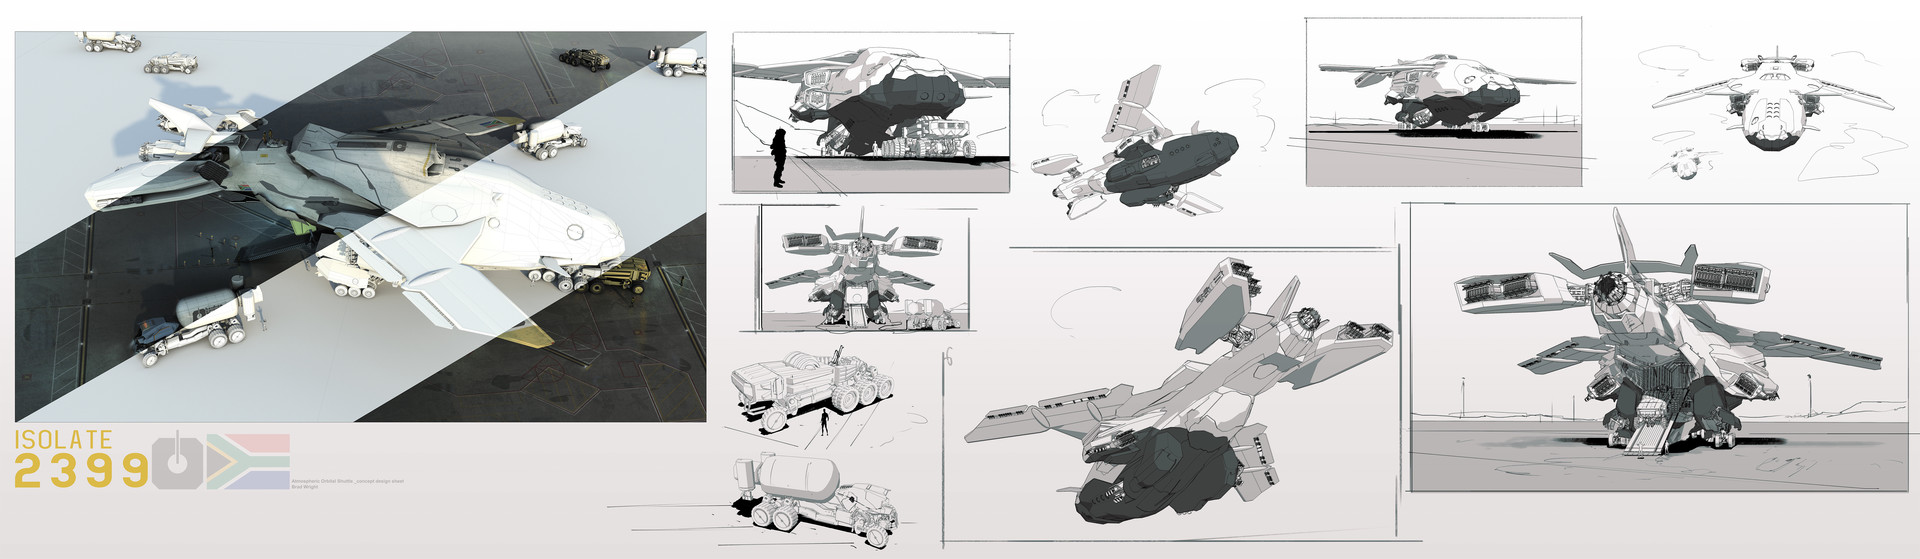 Brad wright shuttle main concept design sheet